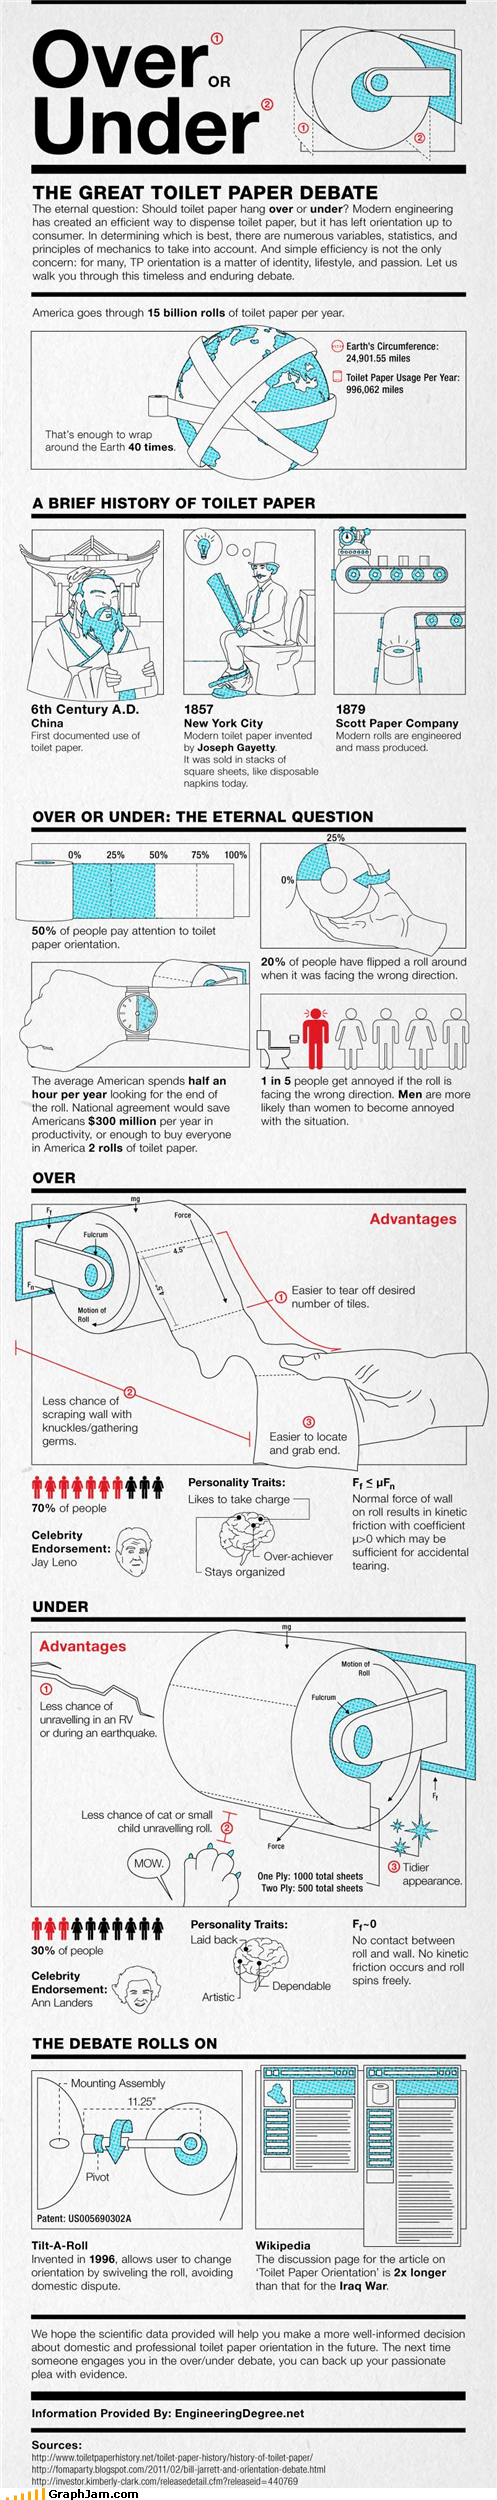 bathroom infographic over roll toilet paper under - 4689664512